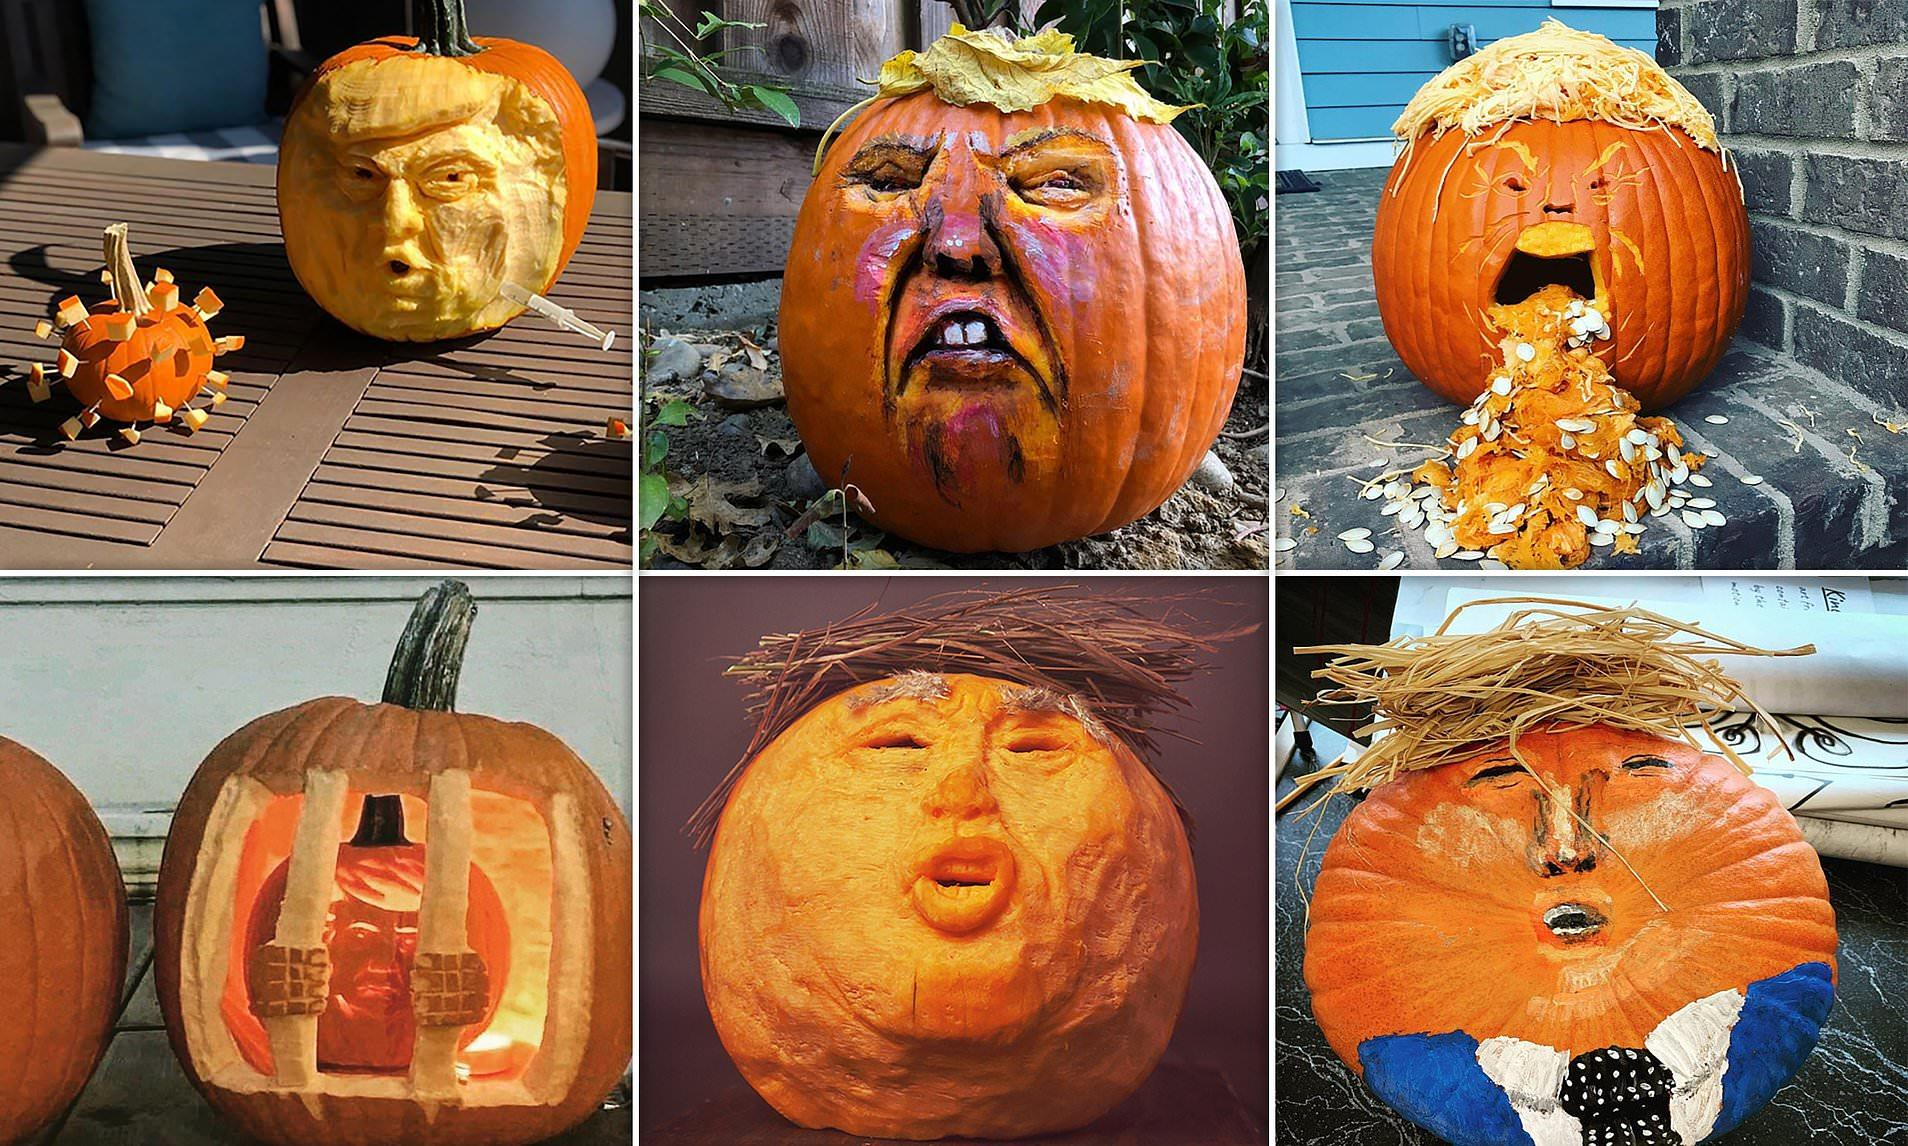 Trumpkins: Gourd, Bad & The Ugly